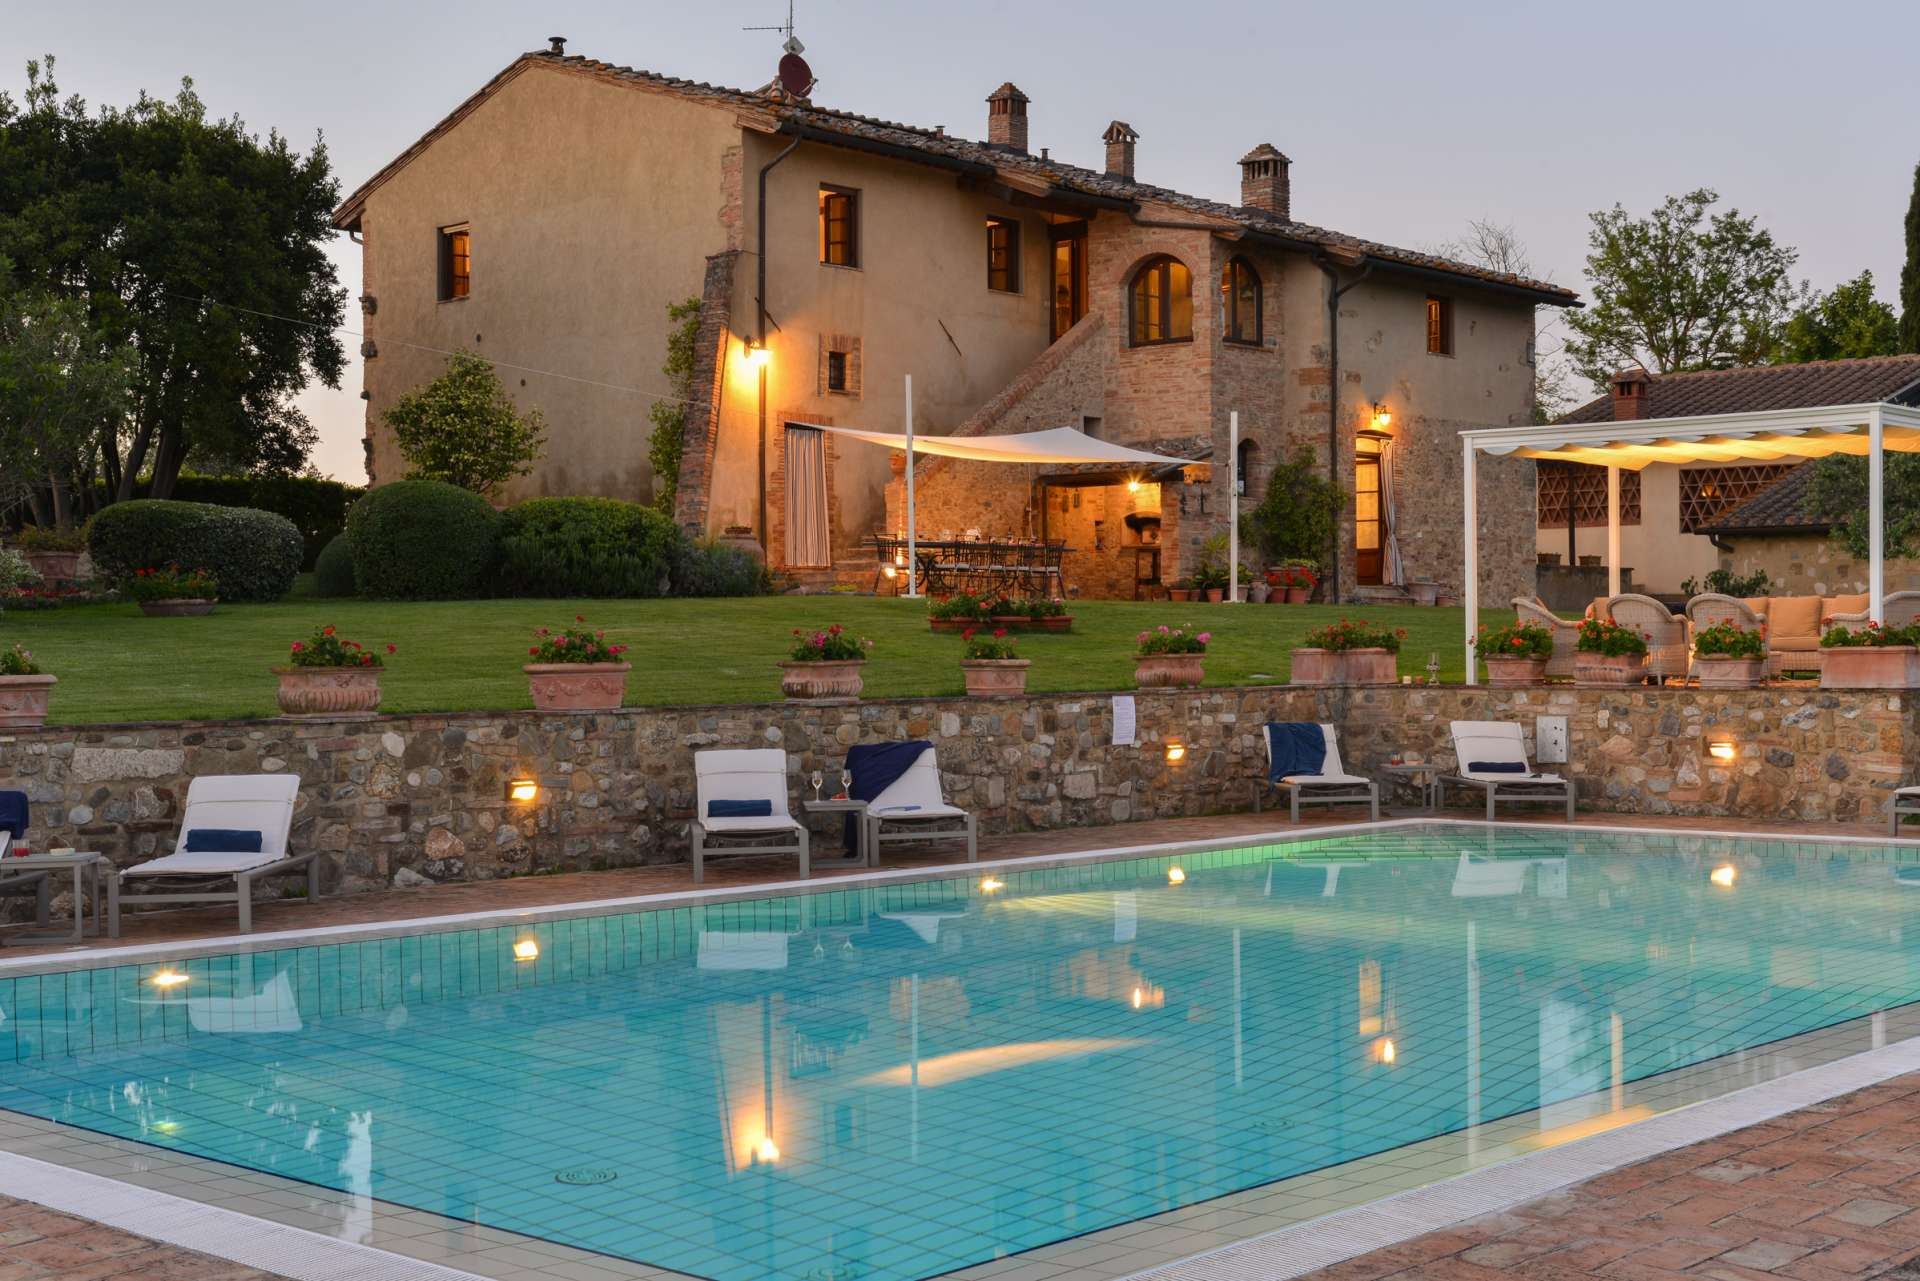 San Leolino | 5 Bed Luxury Villa with Pool | San Gimignano